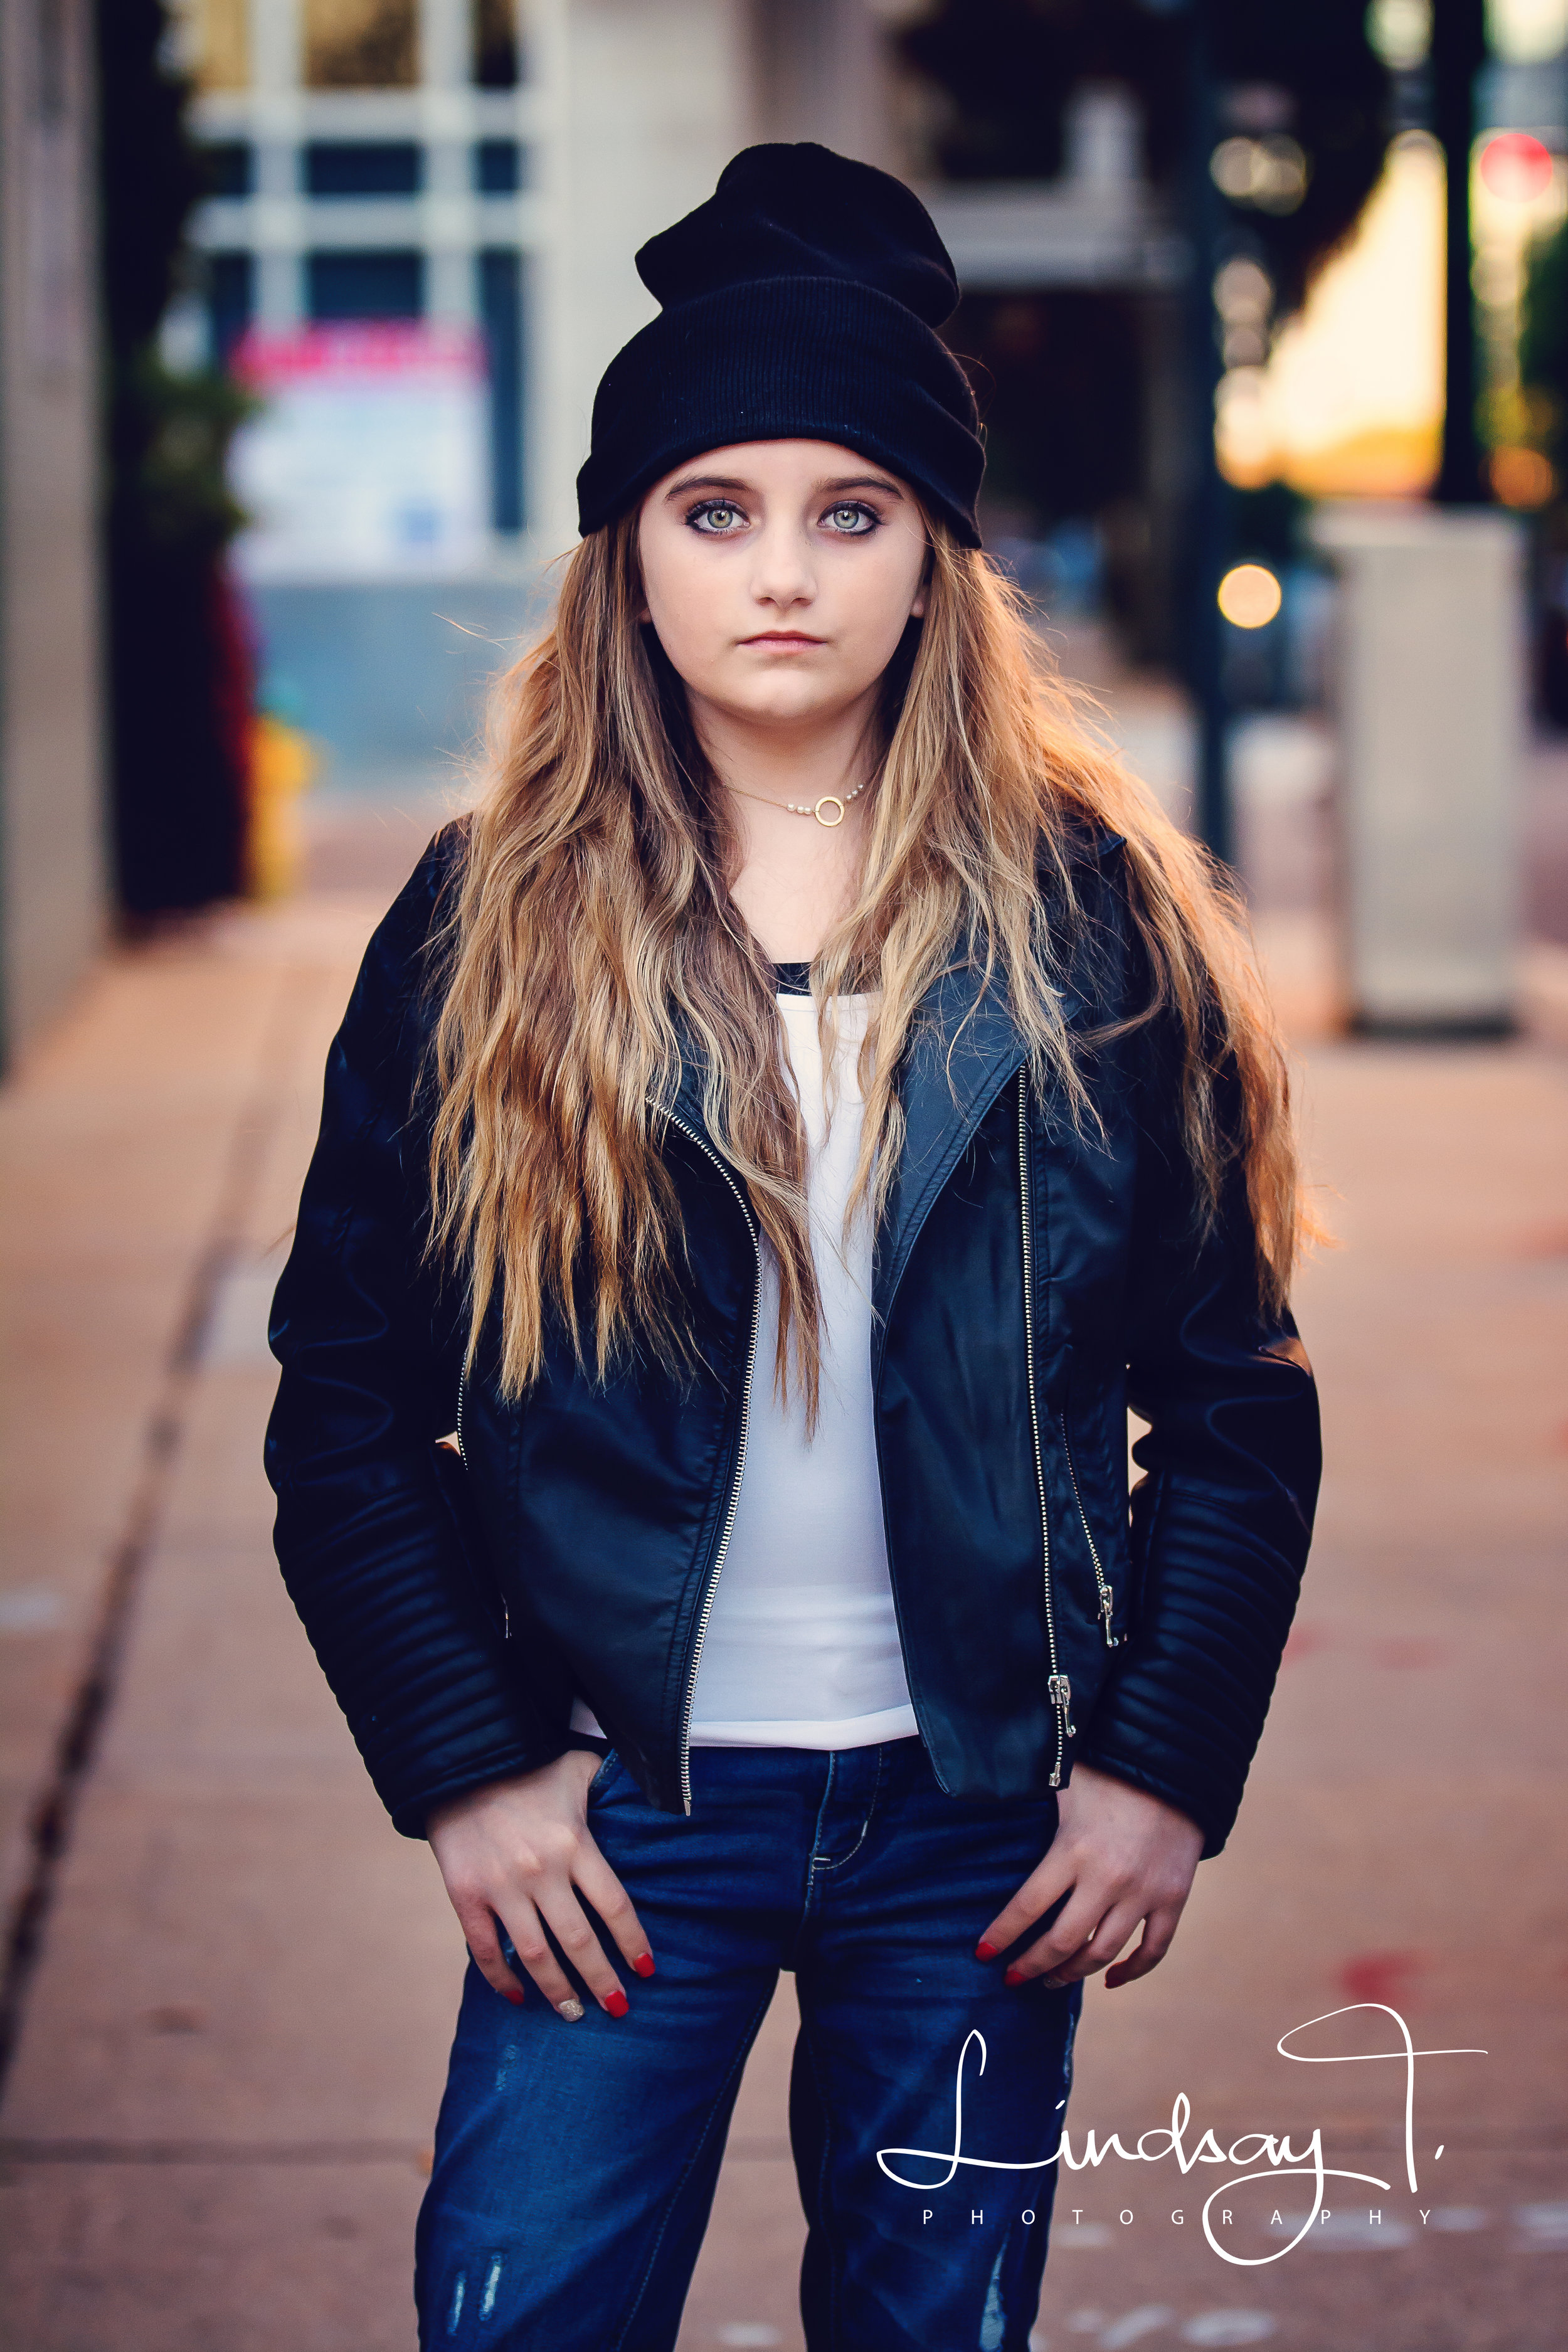 Downtown Mobile Alabama session with 12 year old model Kaitlynn who is a model for Loped